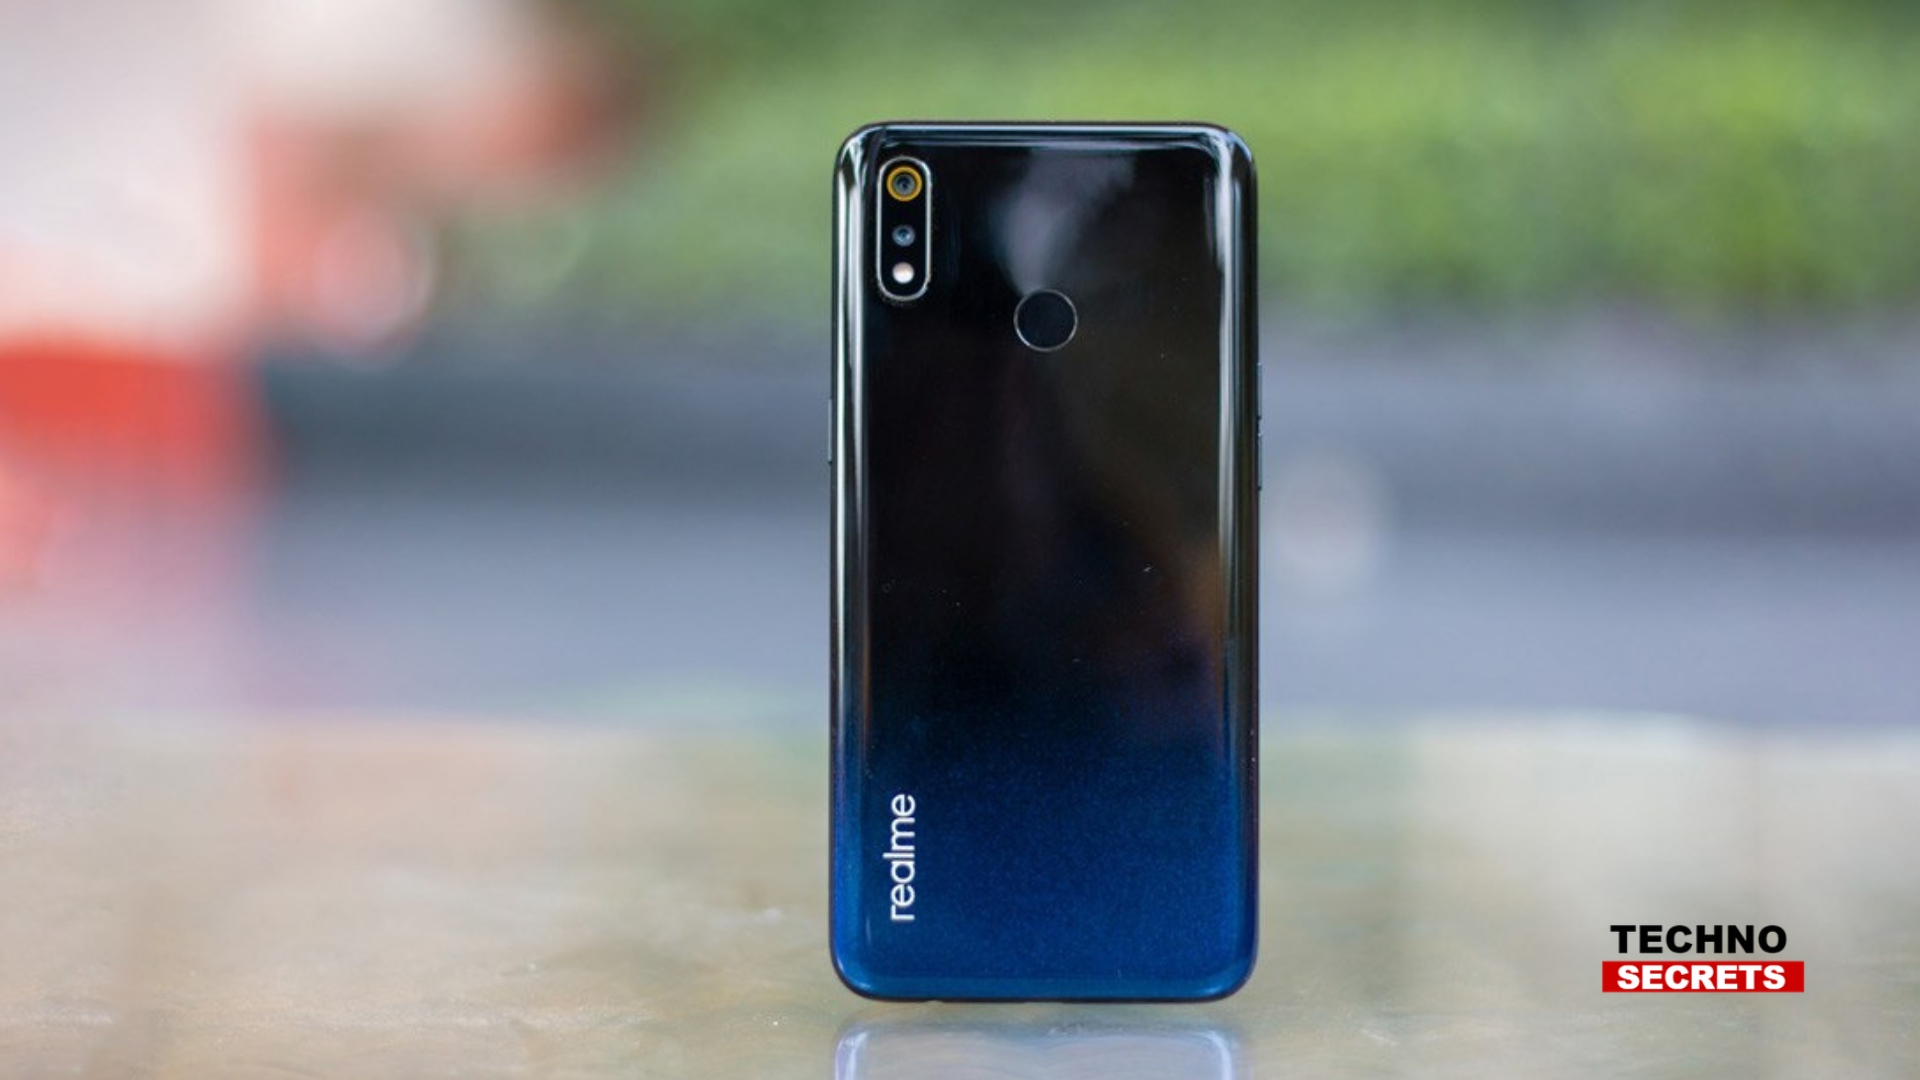 CEO Madhav Sheth Confirms_ Realme 3 Pro Will Support 64-megapixel Ultra HD Mode